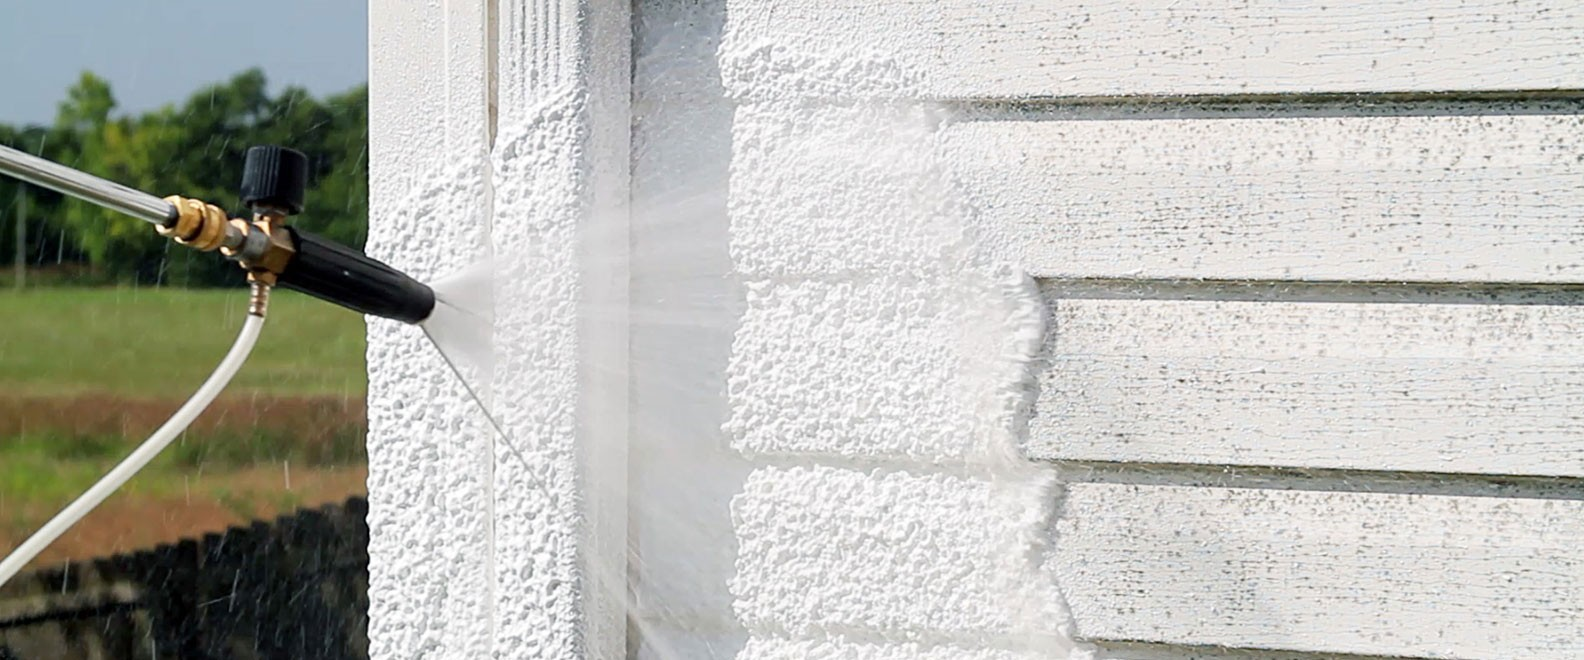 Pressure washing hero foam for homes - Strong Shield